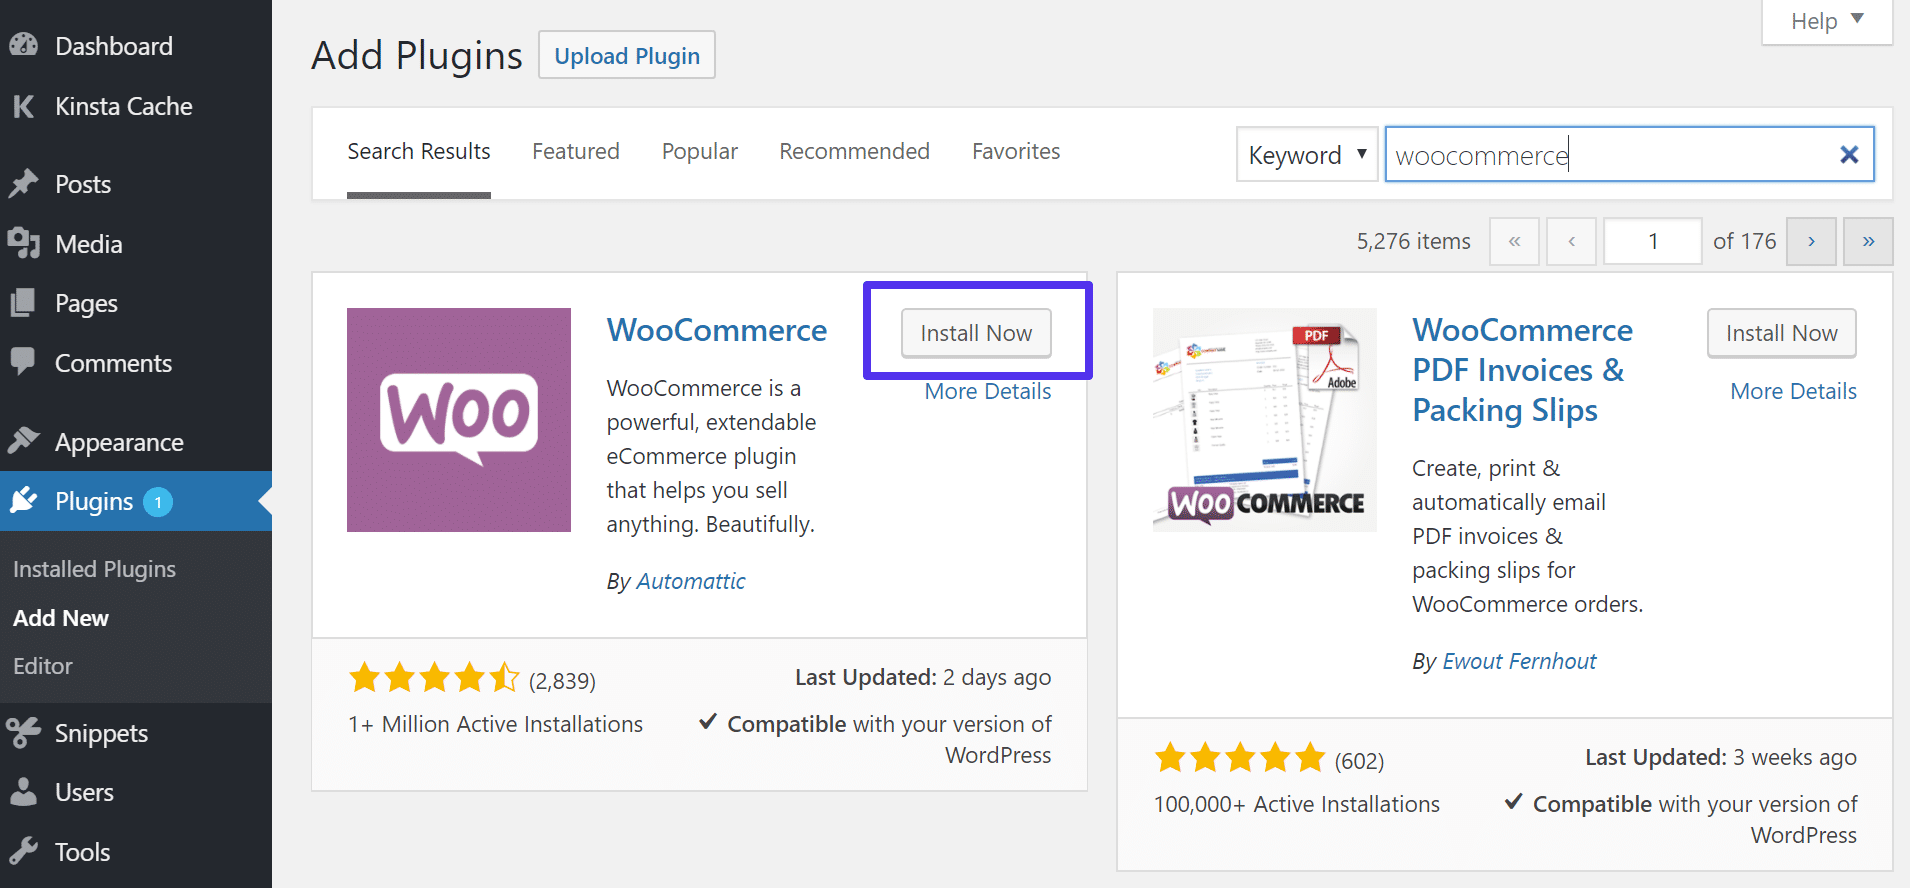 1554920052 6910 Woocommerce Installation 1